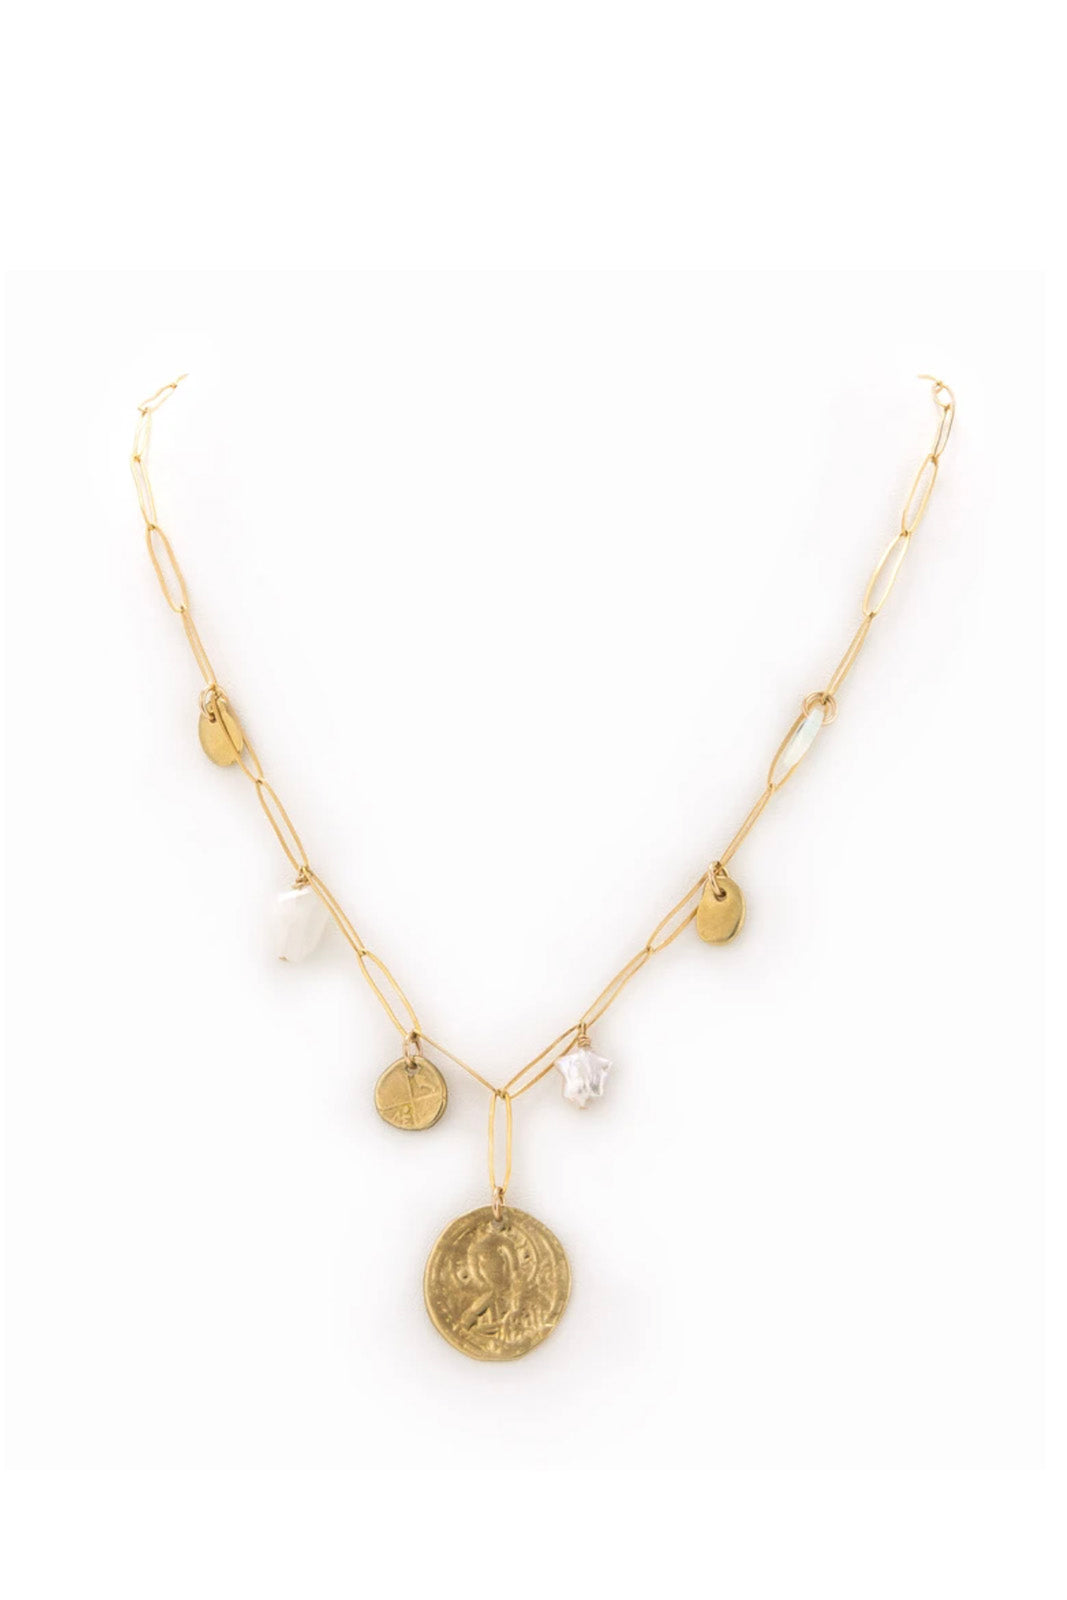 Taylor and Tessier Wake Necklace